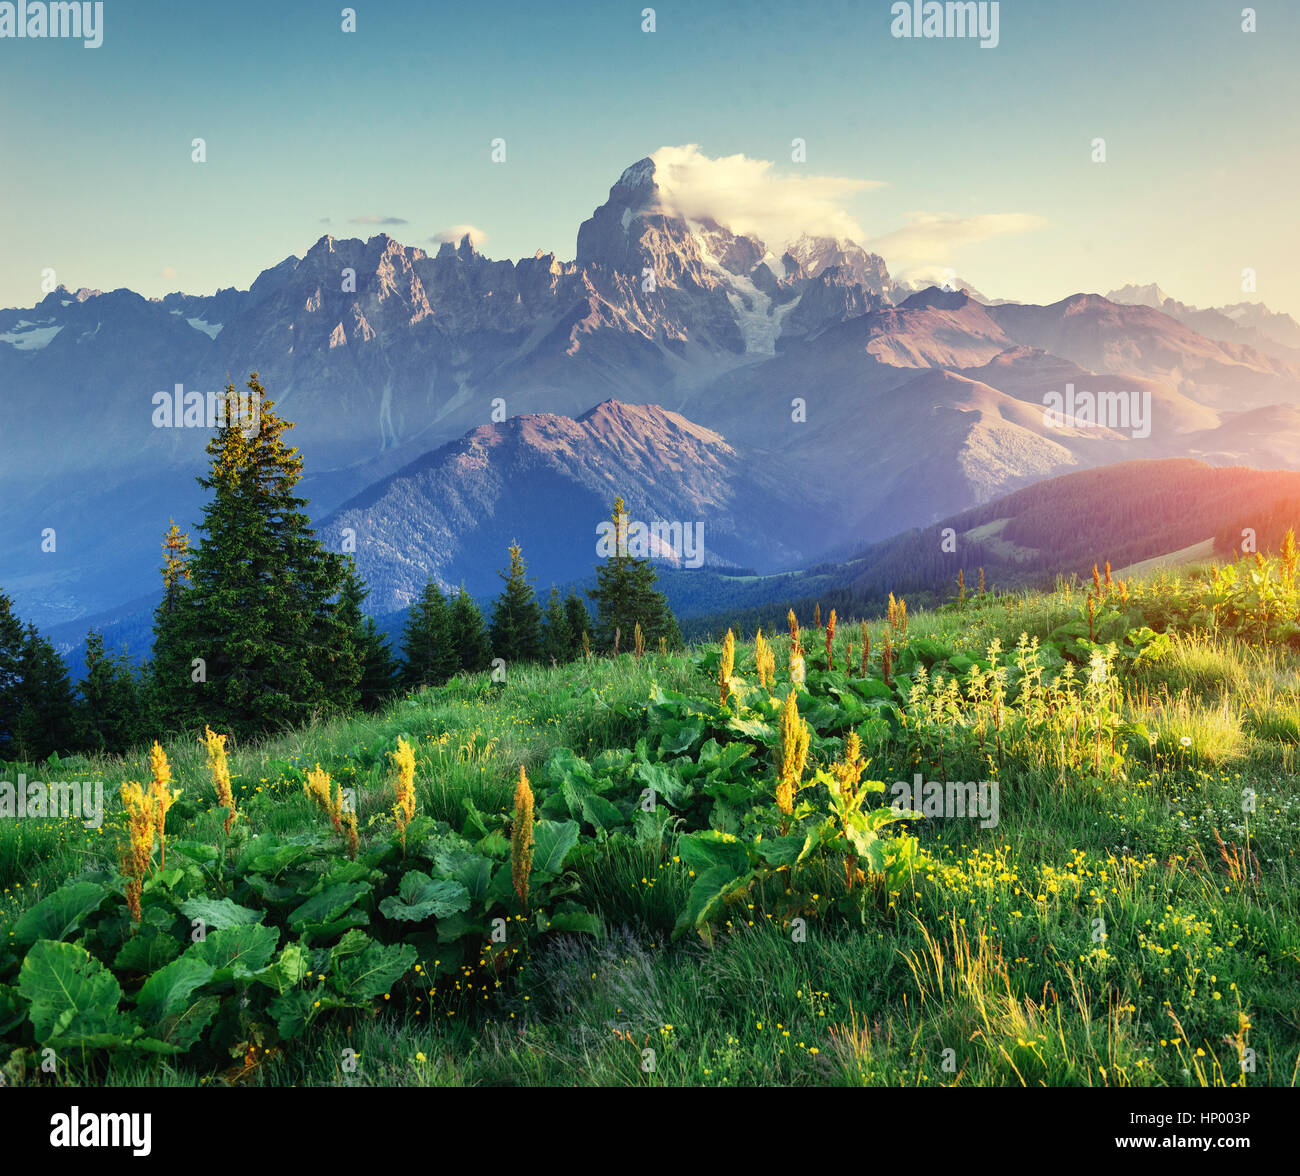 wildflowers in the mountains at sunset. Carpathians. Ukraine, Eu - Stock Image